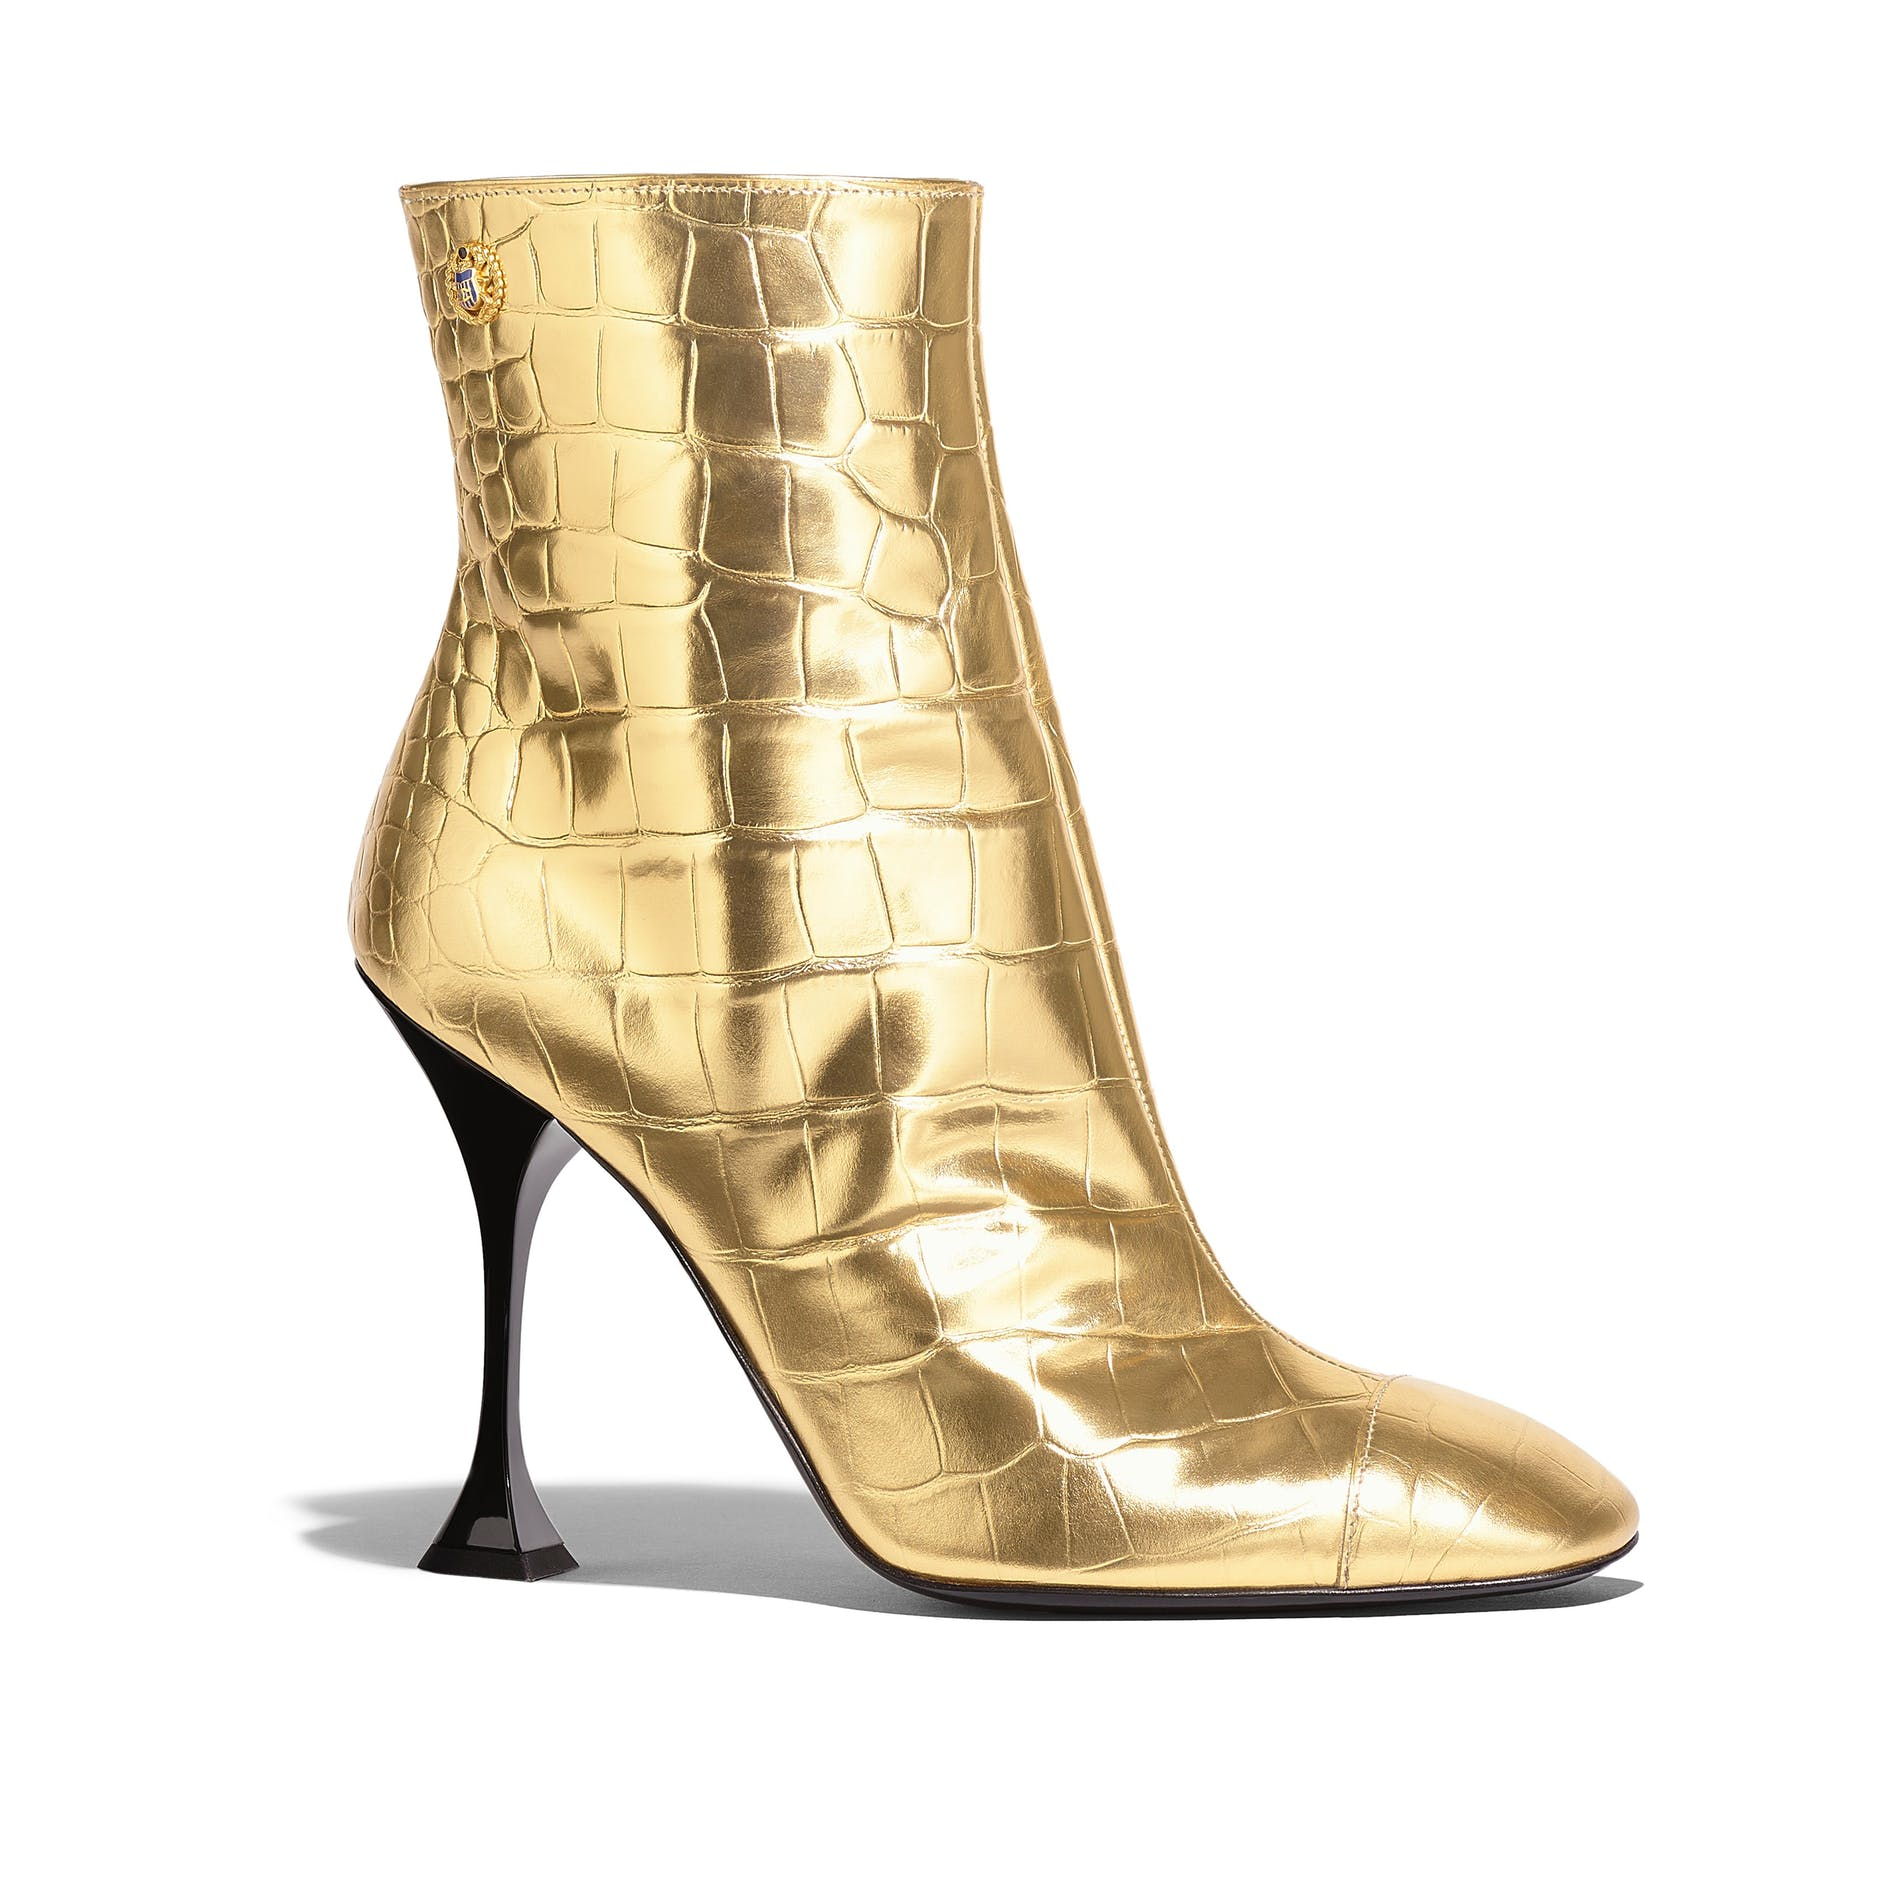 1559726673544334 04 g34902 y53030 0h813 gold boots in embossed leather hd